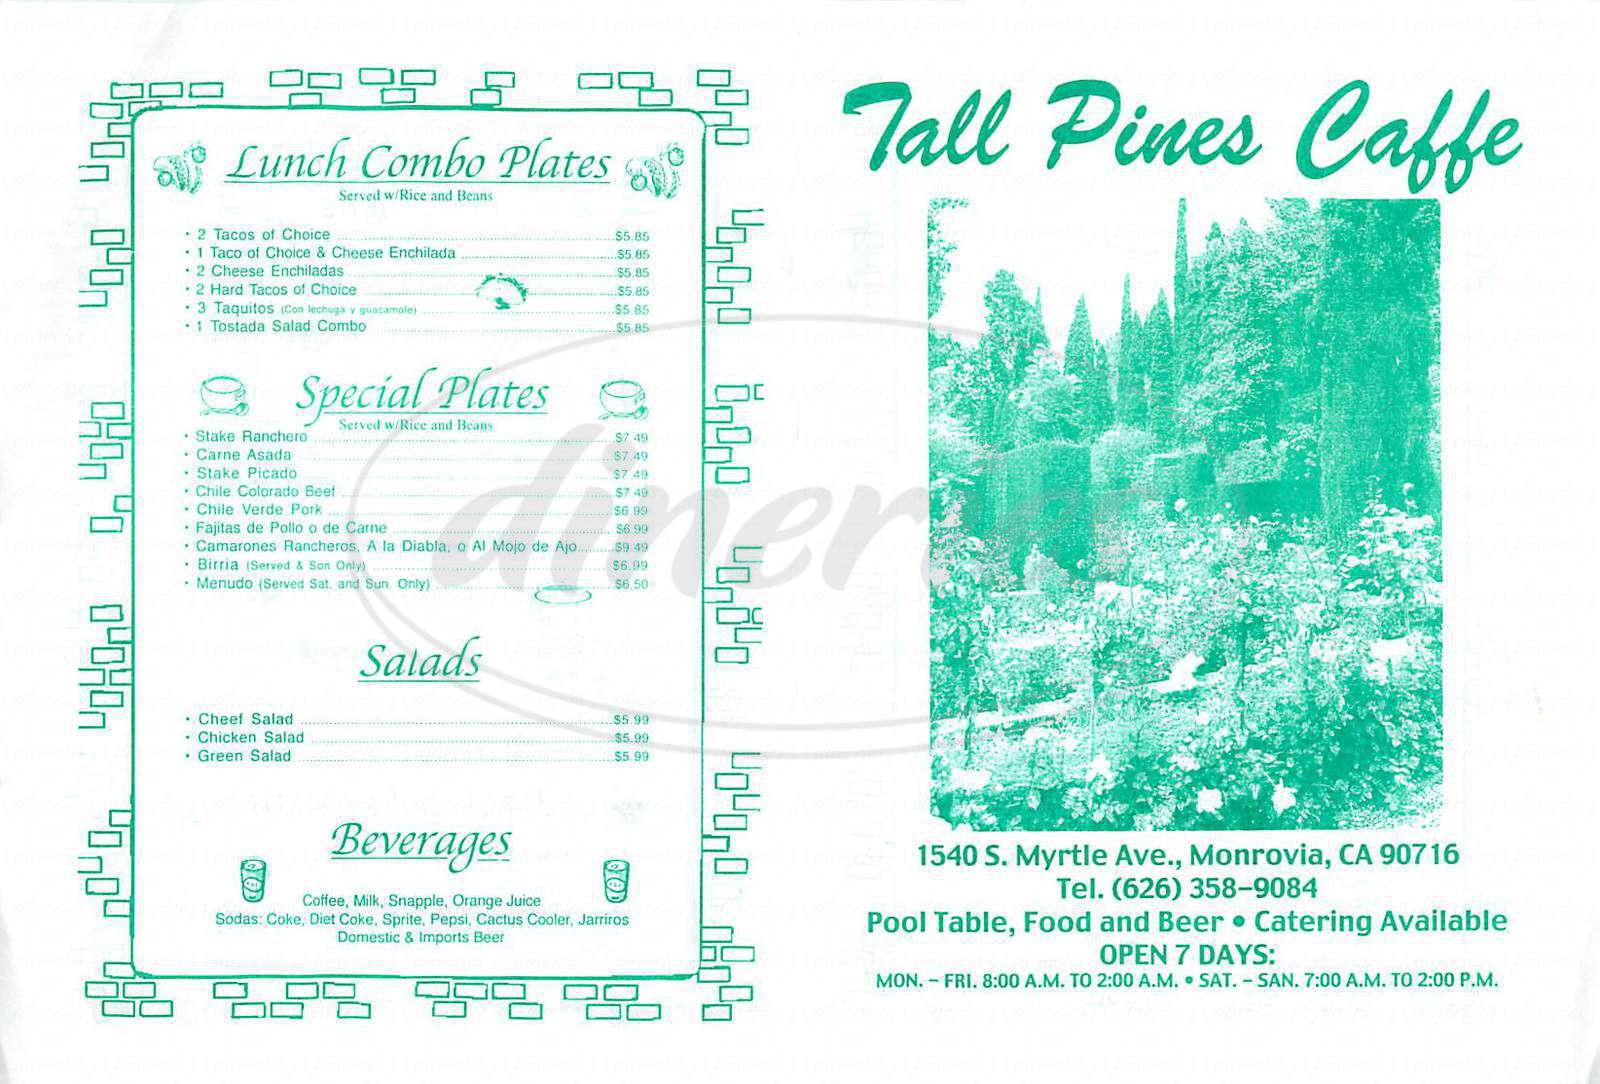 menu for Tall Pines Caffe